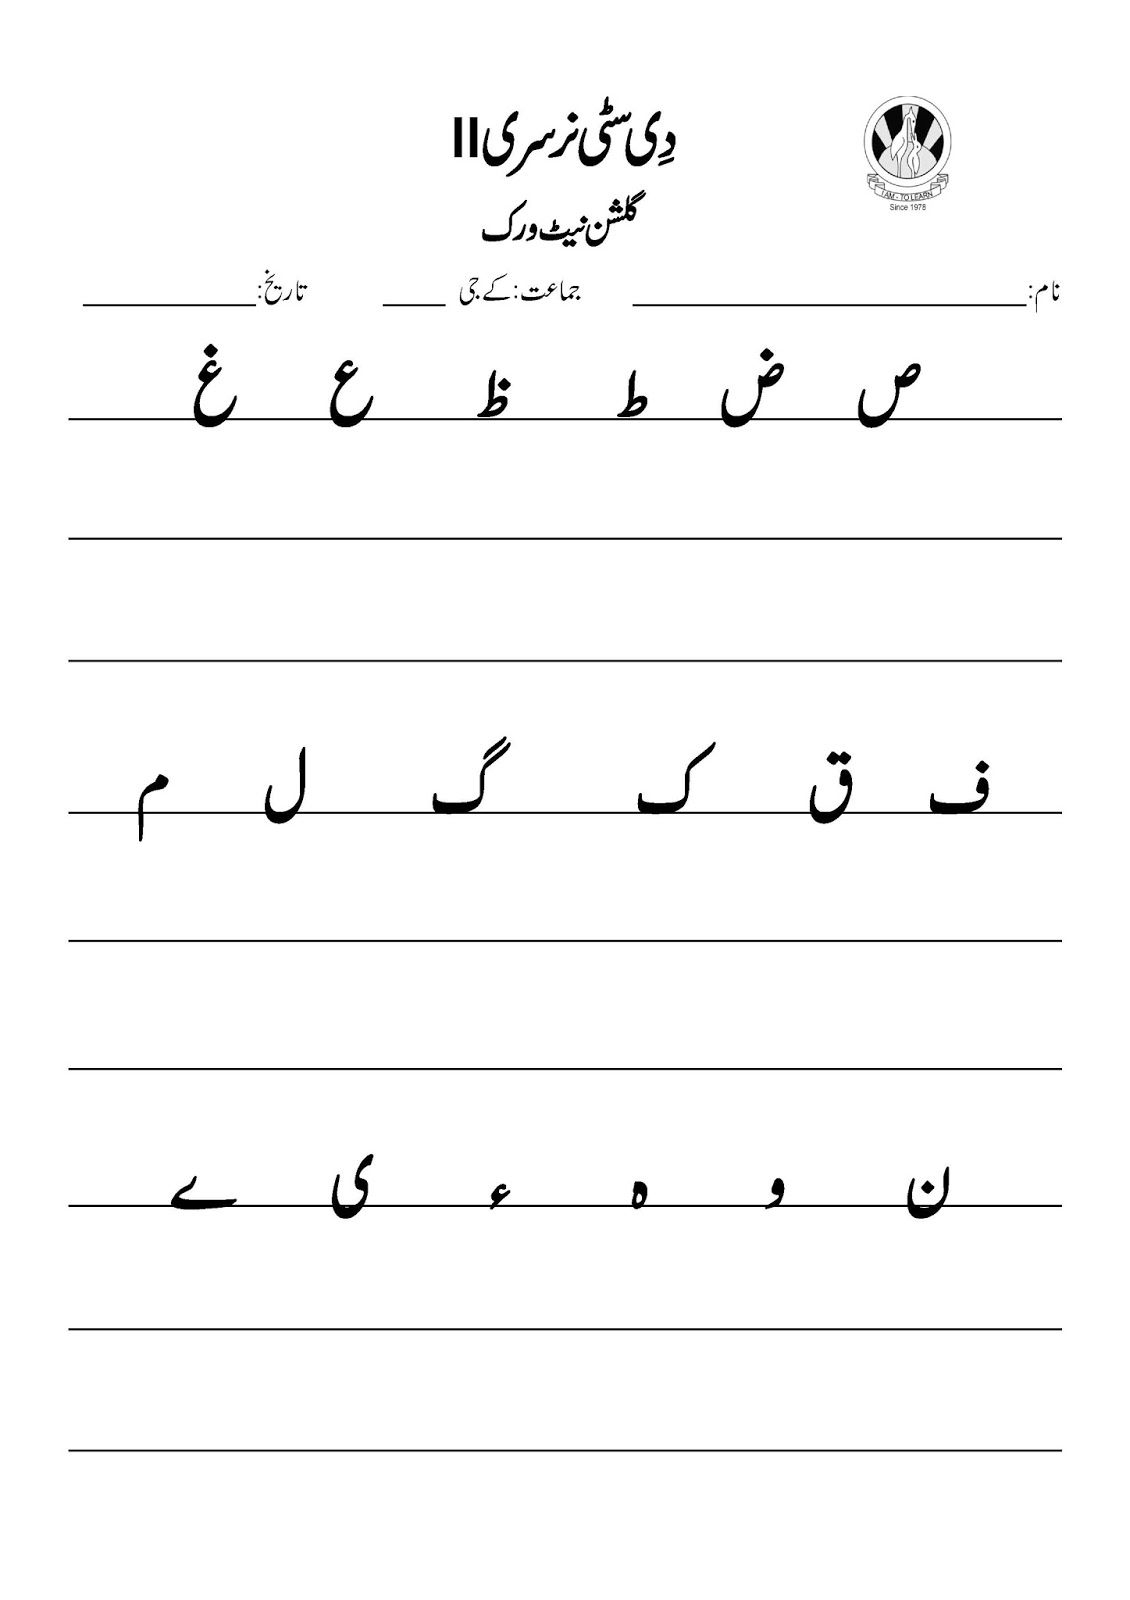 Sr Gulshan The City Nursery-Ii: Urdu First Term | Alphabet